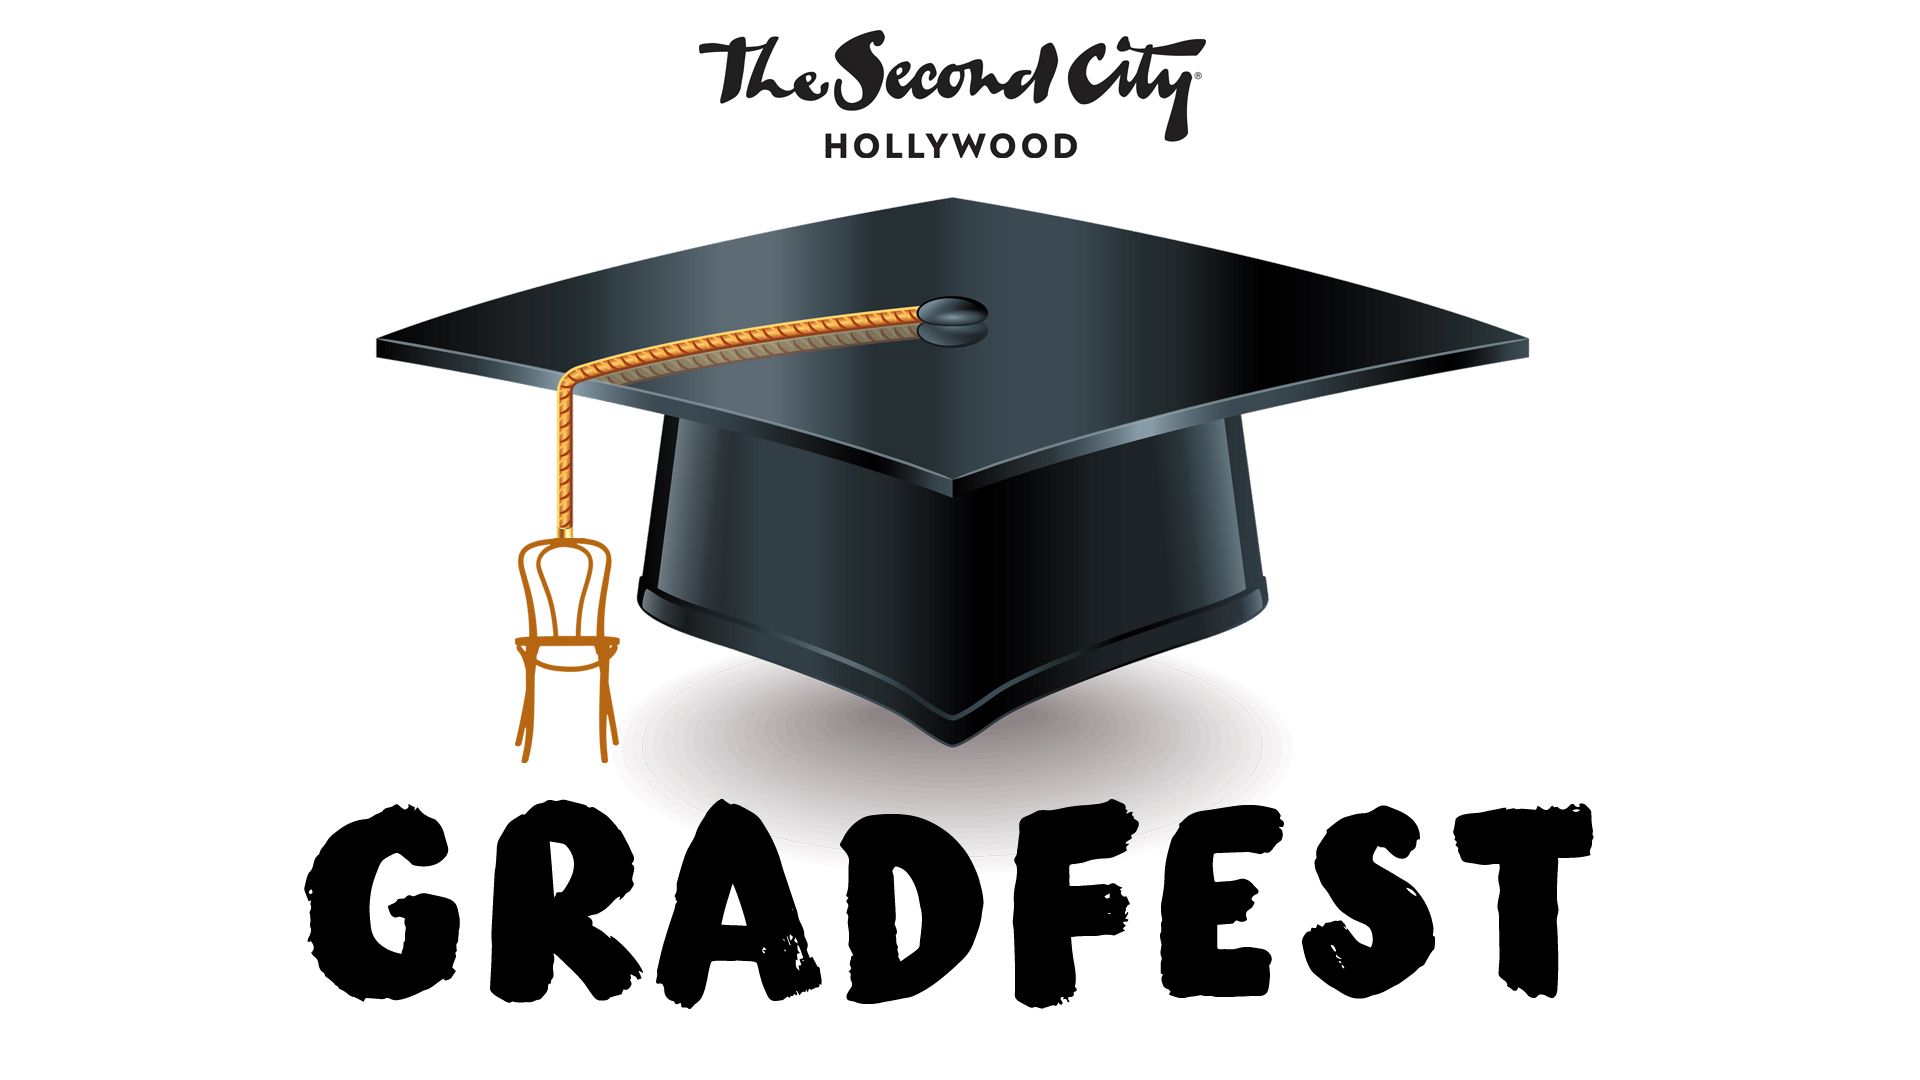 Second City Gradfest